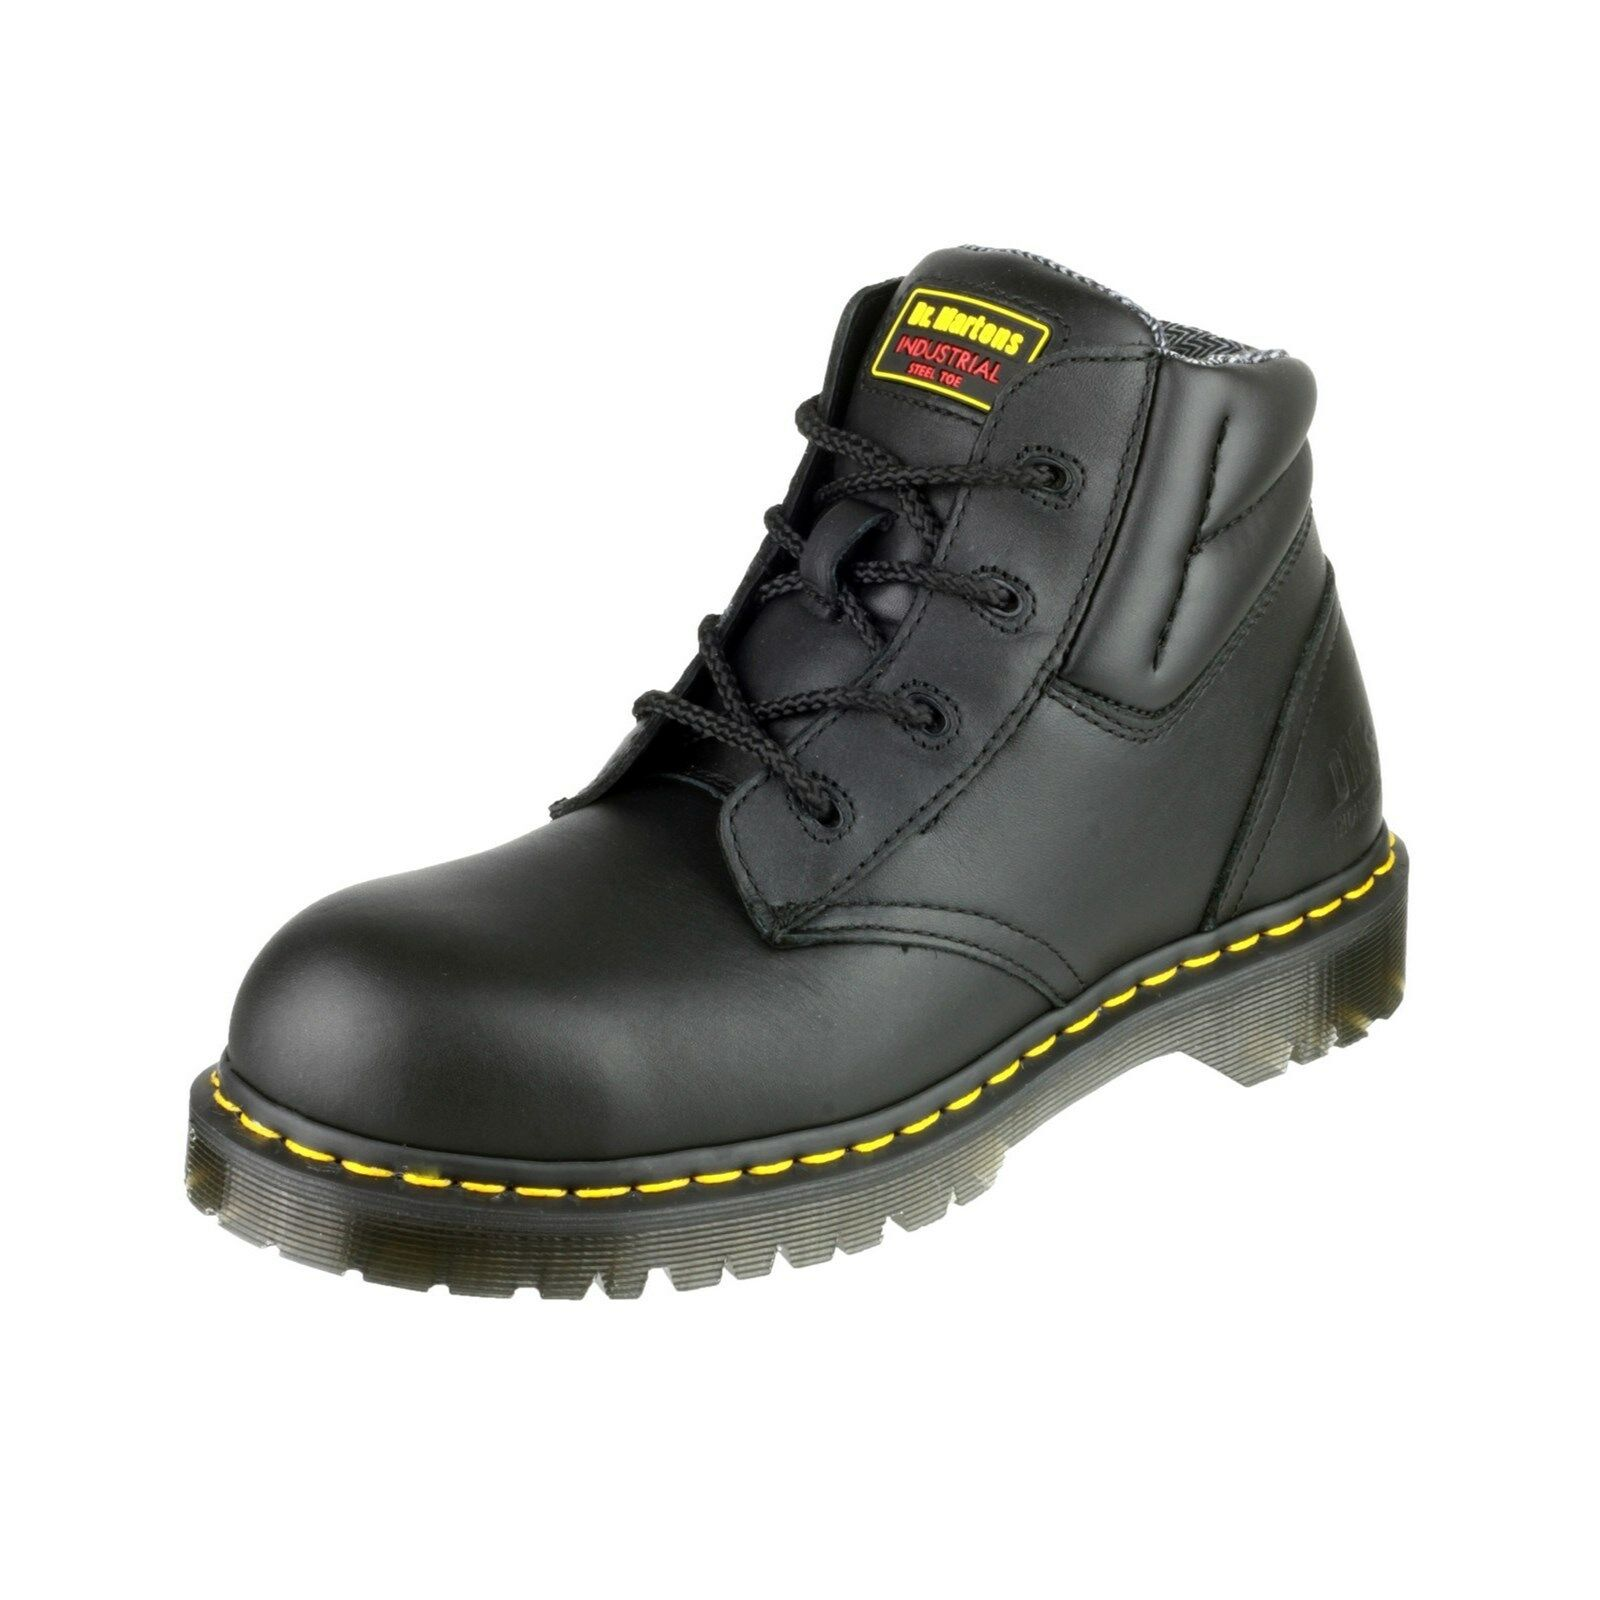 Dr Martens FS20Z Mens Safety Boots Industrial Leather Steel Toe Cap Work shoes